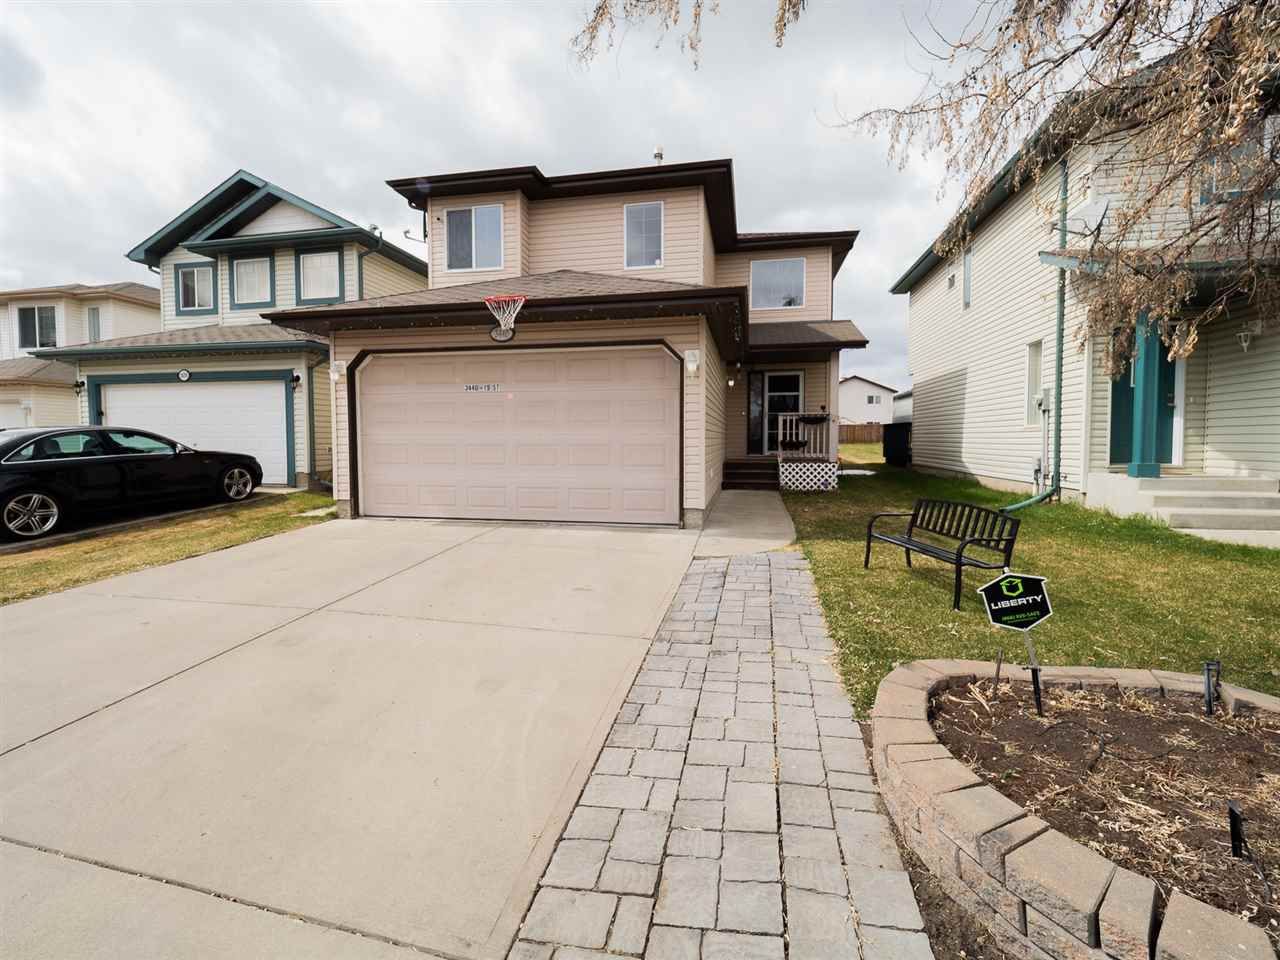 Main Photo: 3440 19 Street in Edmonton: Zone 30 House for sale : MLS®# E4152818